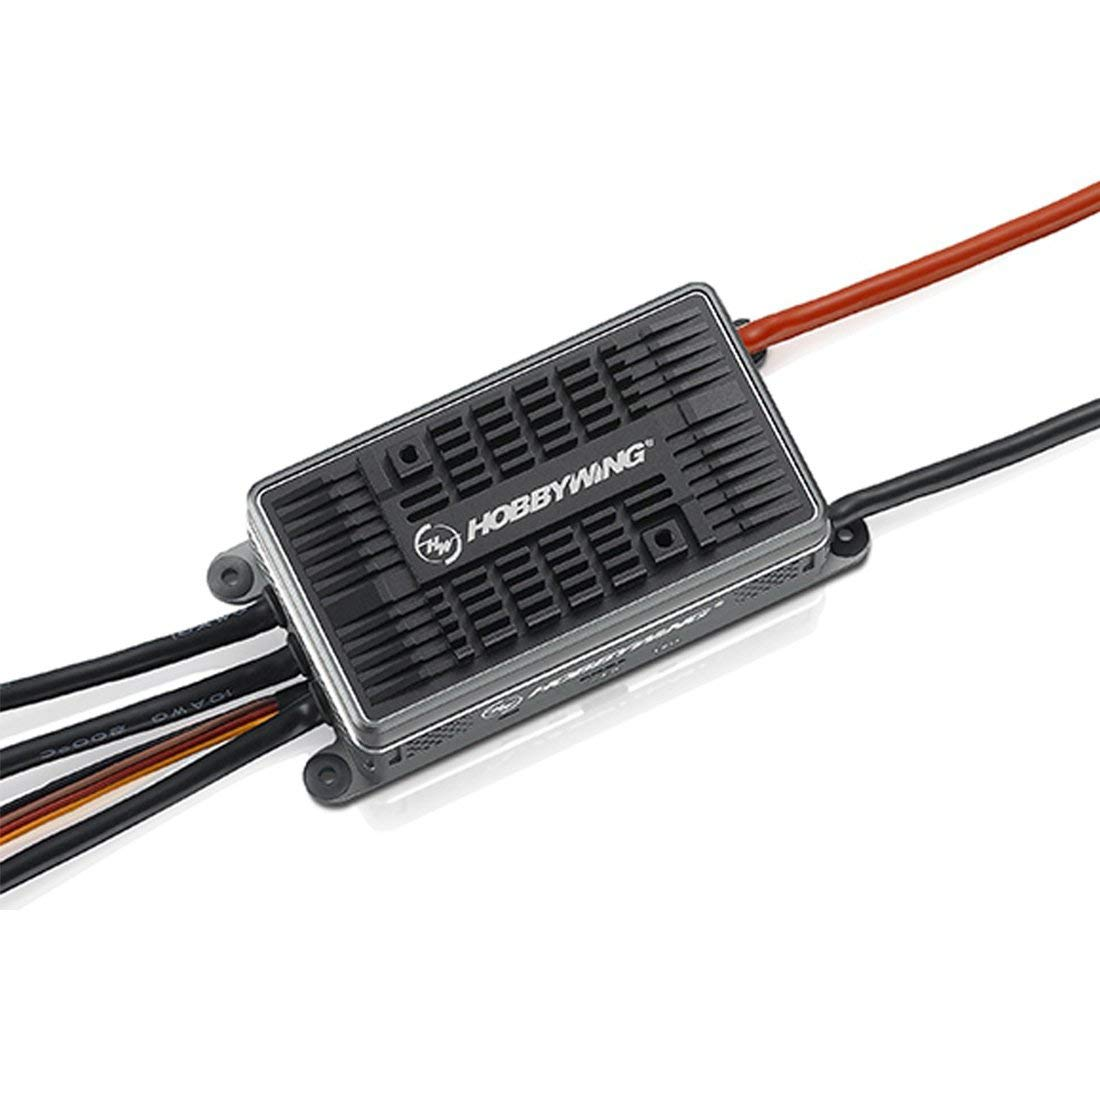 Original HobbyWing Platinum HV 200A V4.1 ESC 6-14s Electronic Speed Control with/without BEC for DIY RC Racer (with BEC)